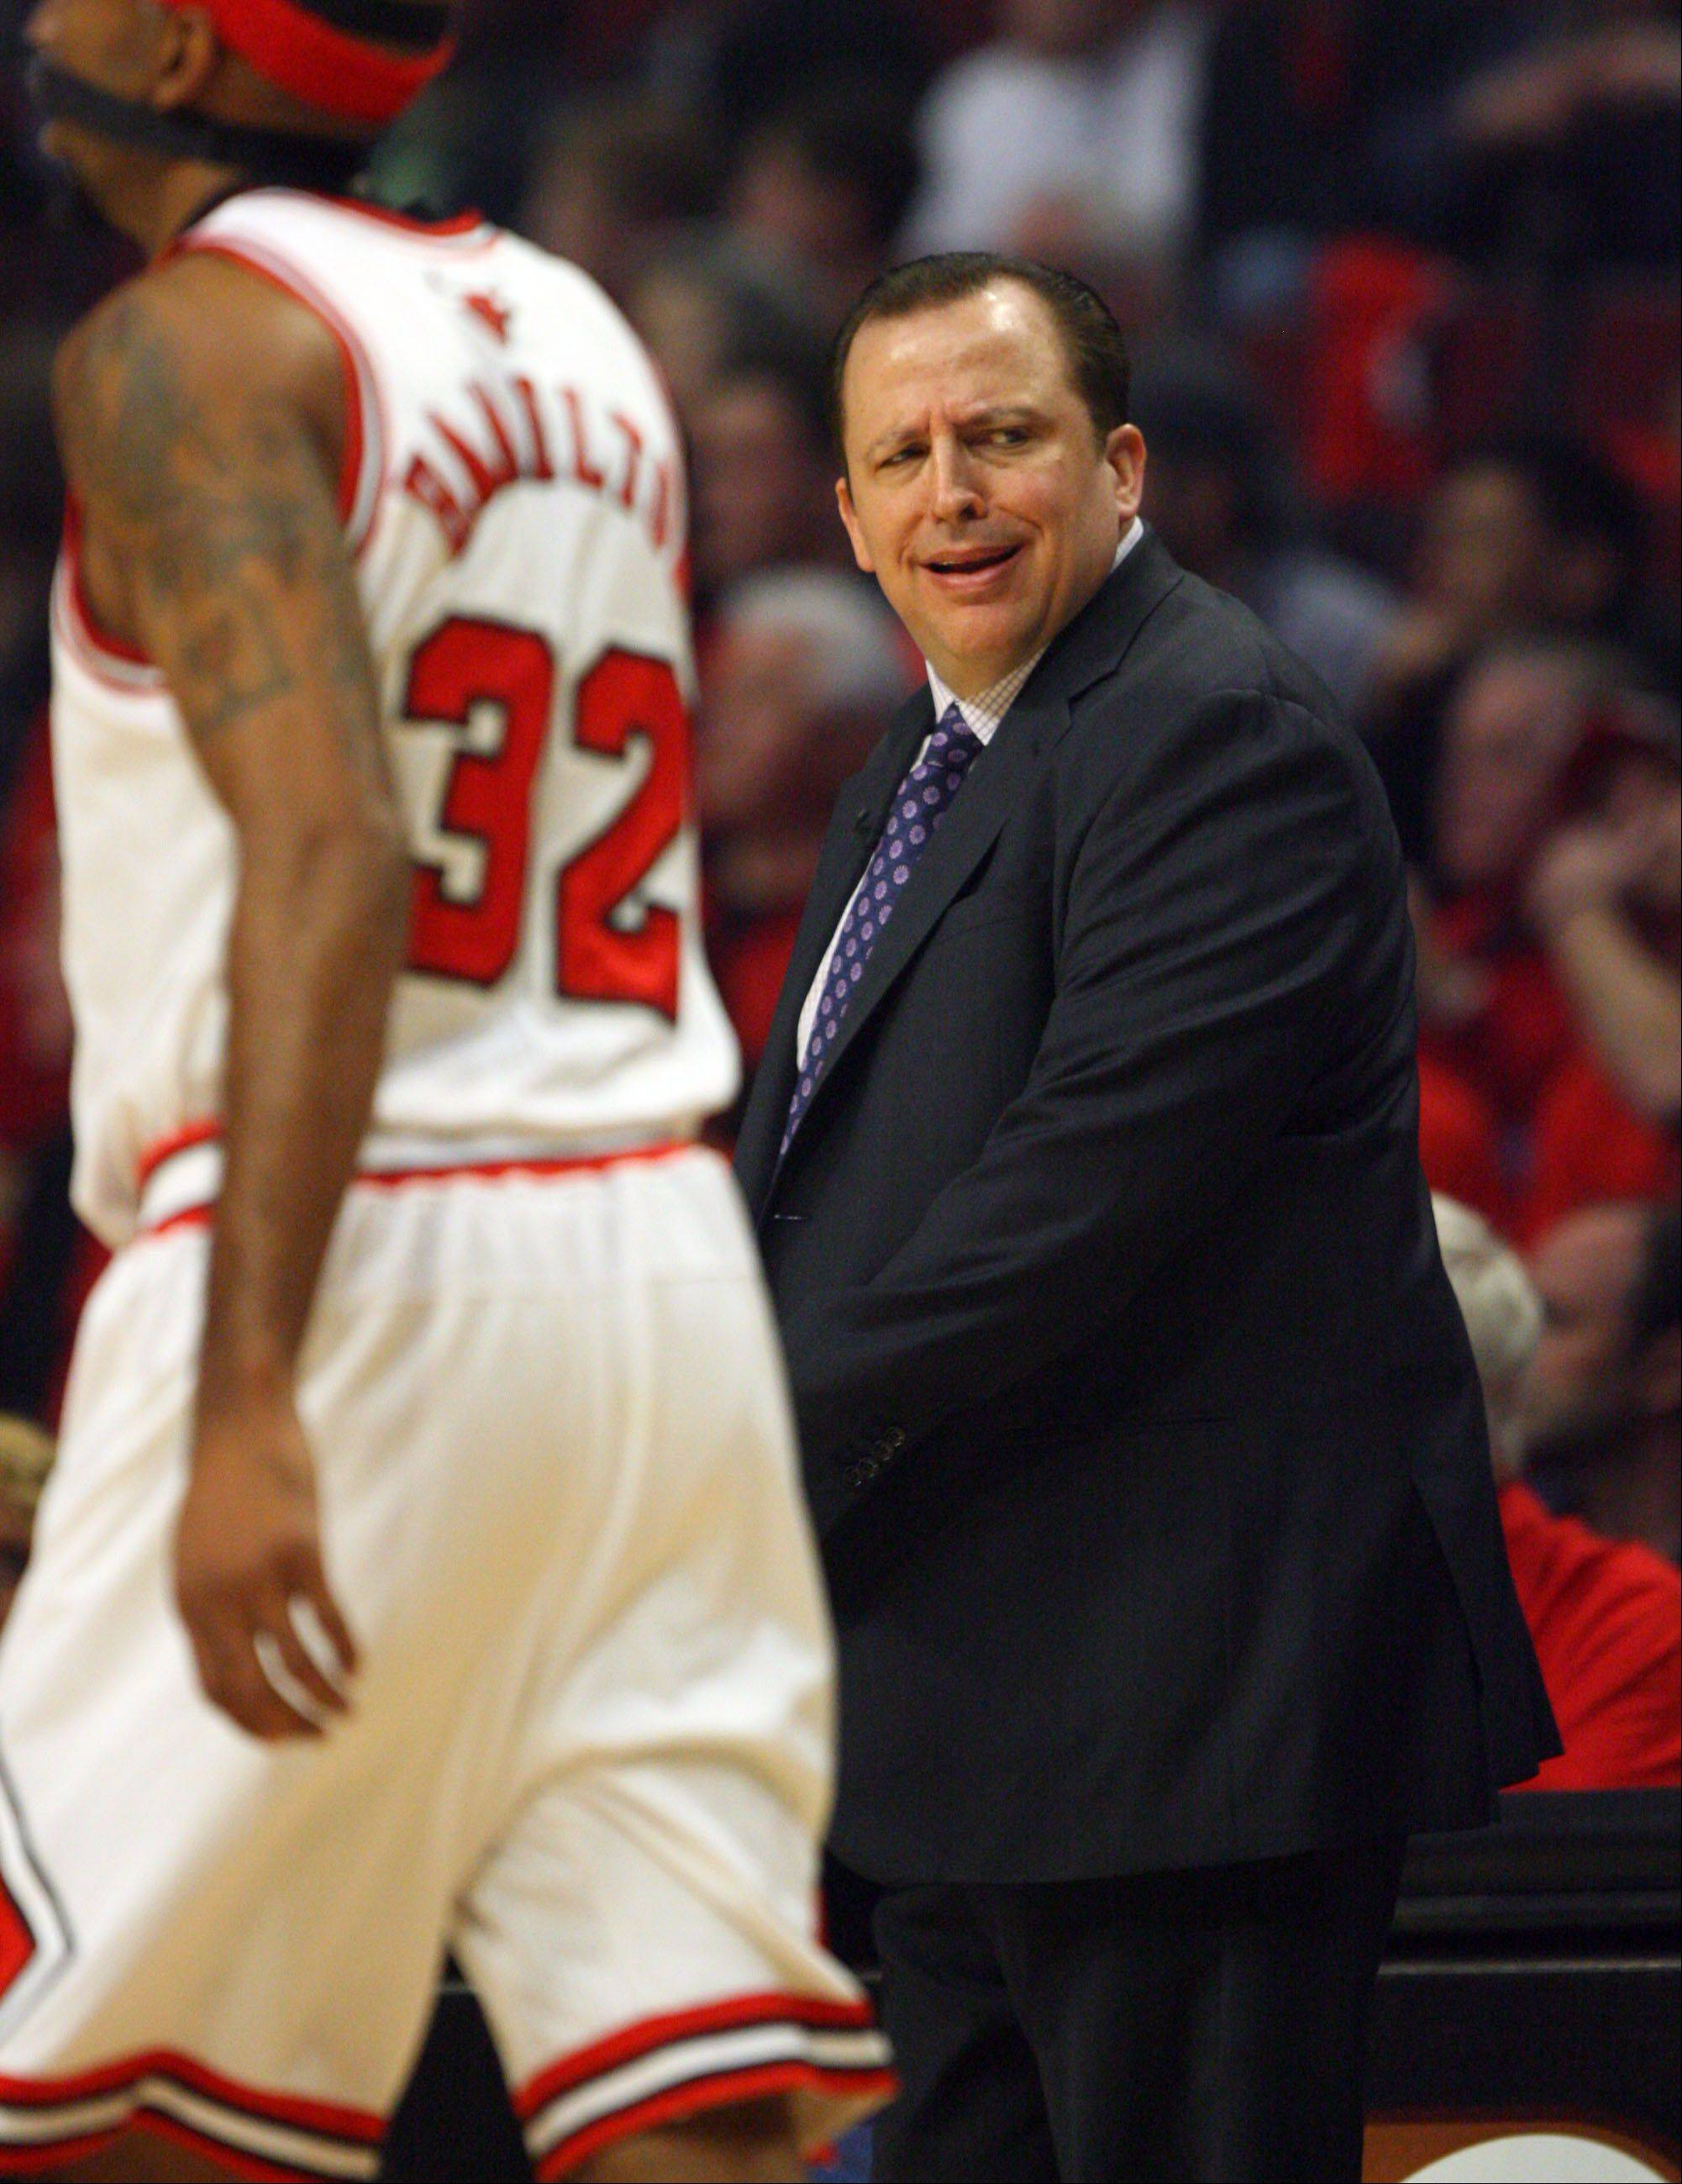 Chicago Bulls' head coach Tom Thibodeau appears frustrated.